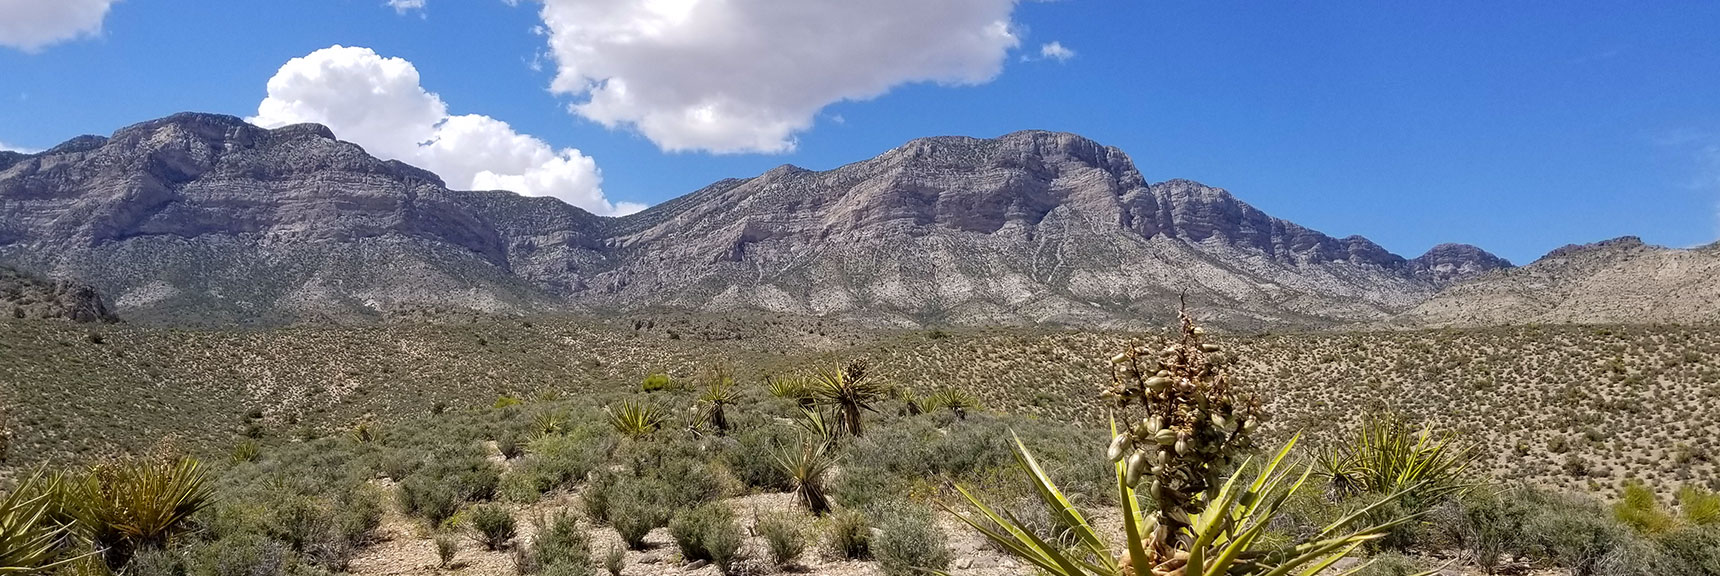 Red Rock National Park View of La Madre Mountain from Top of Scenic Drive